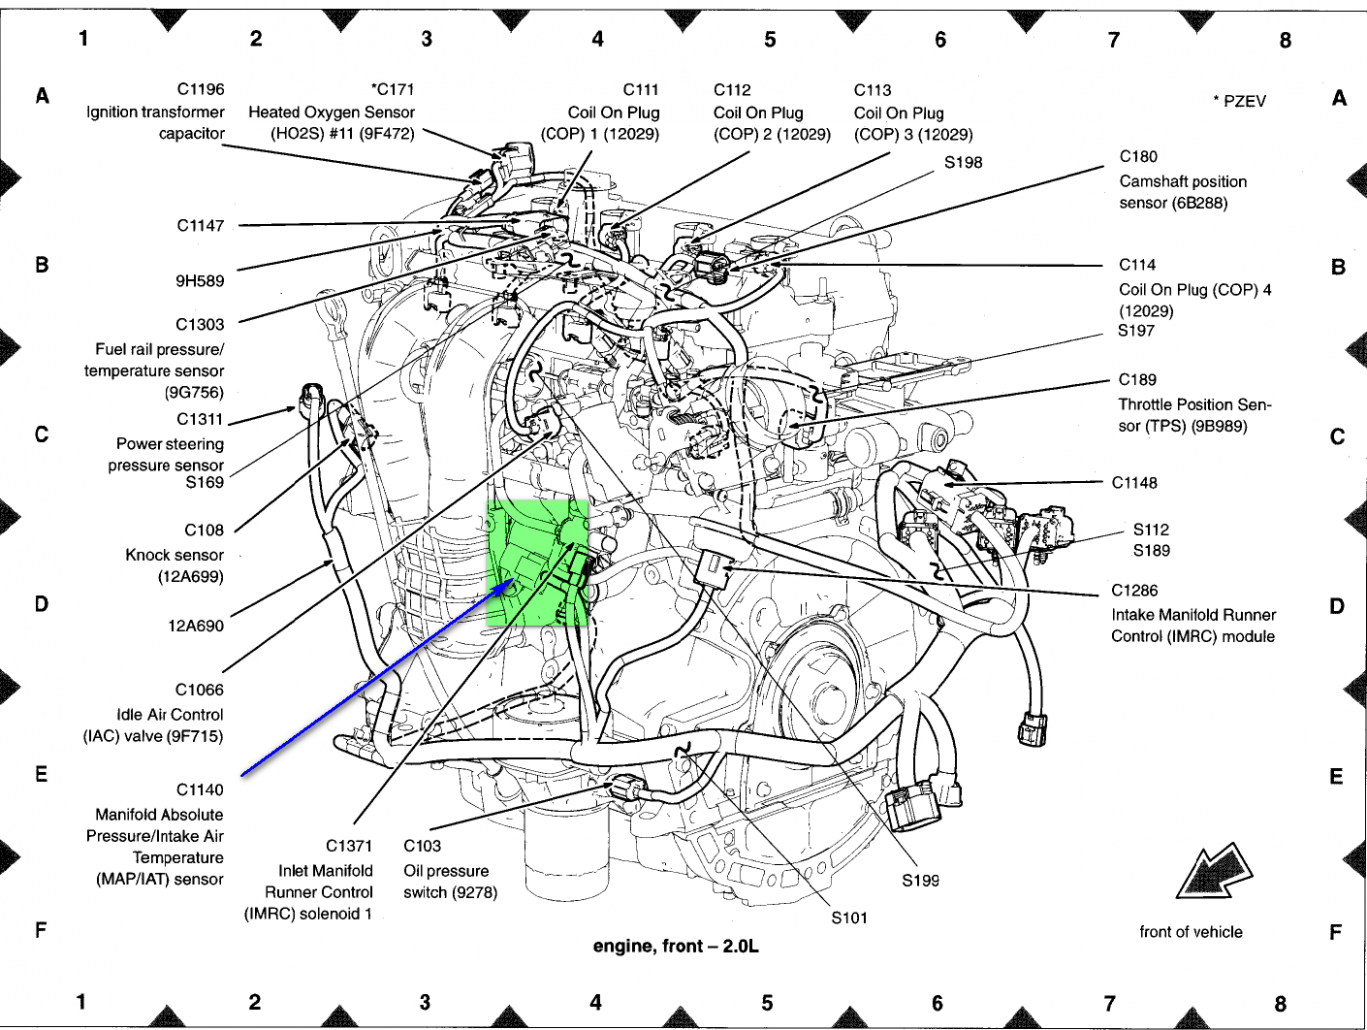 Where can i locate the iat sensor on my6 ford focus st